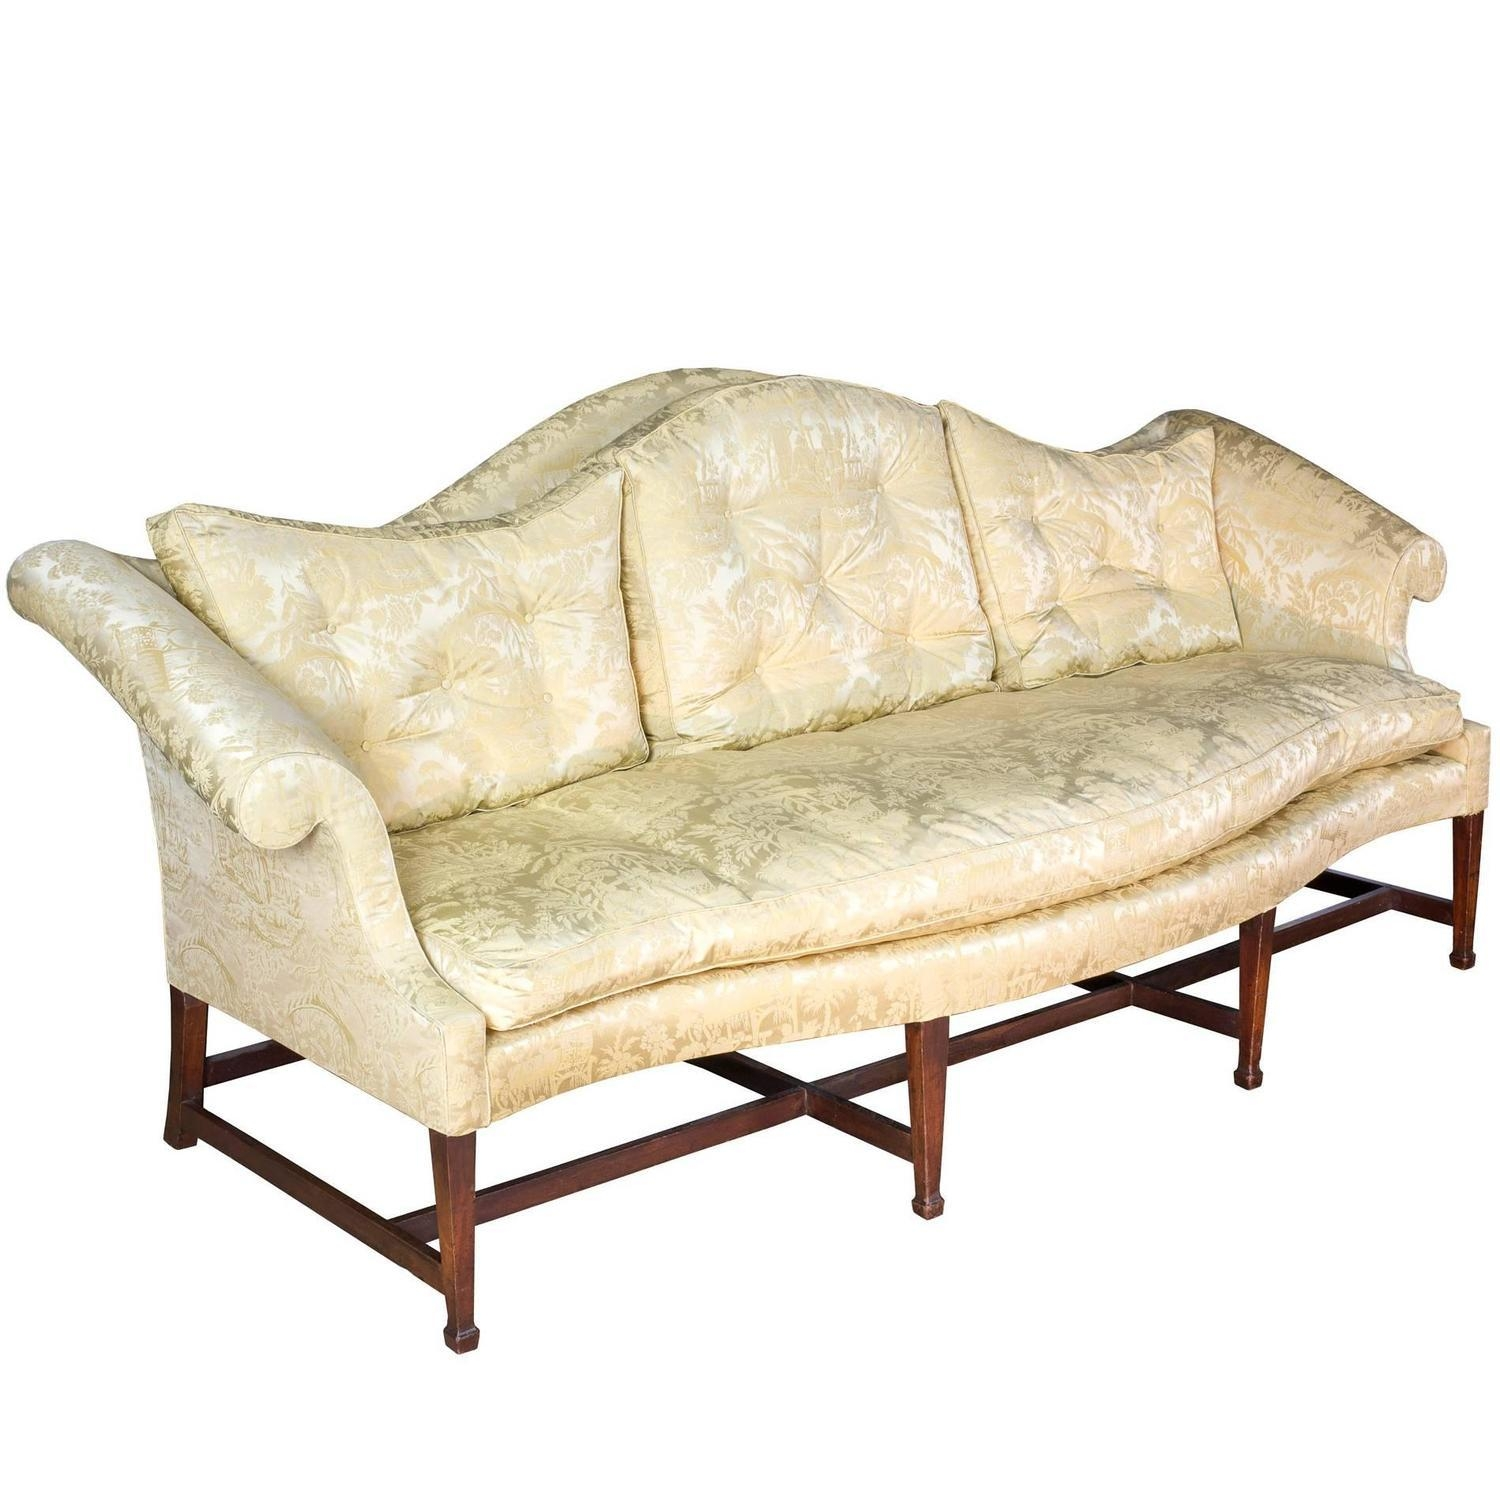 Mahogany Hepplewhite Camelback Sofa With Serpentine Back And Seat For Chippendale Camelback Sofas (Image 15 of 20)